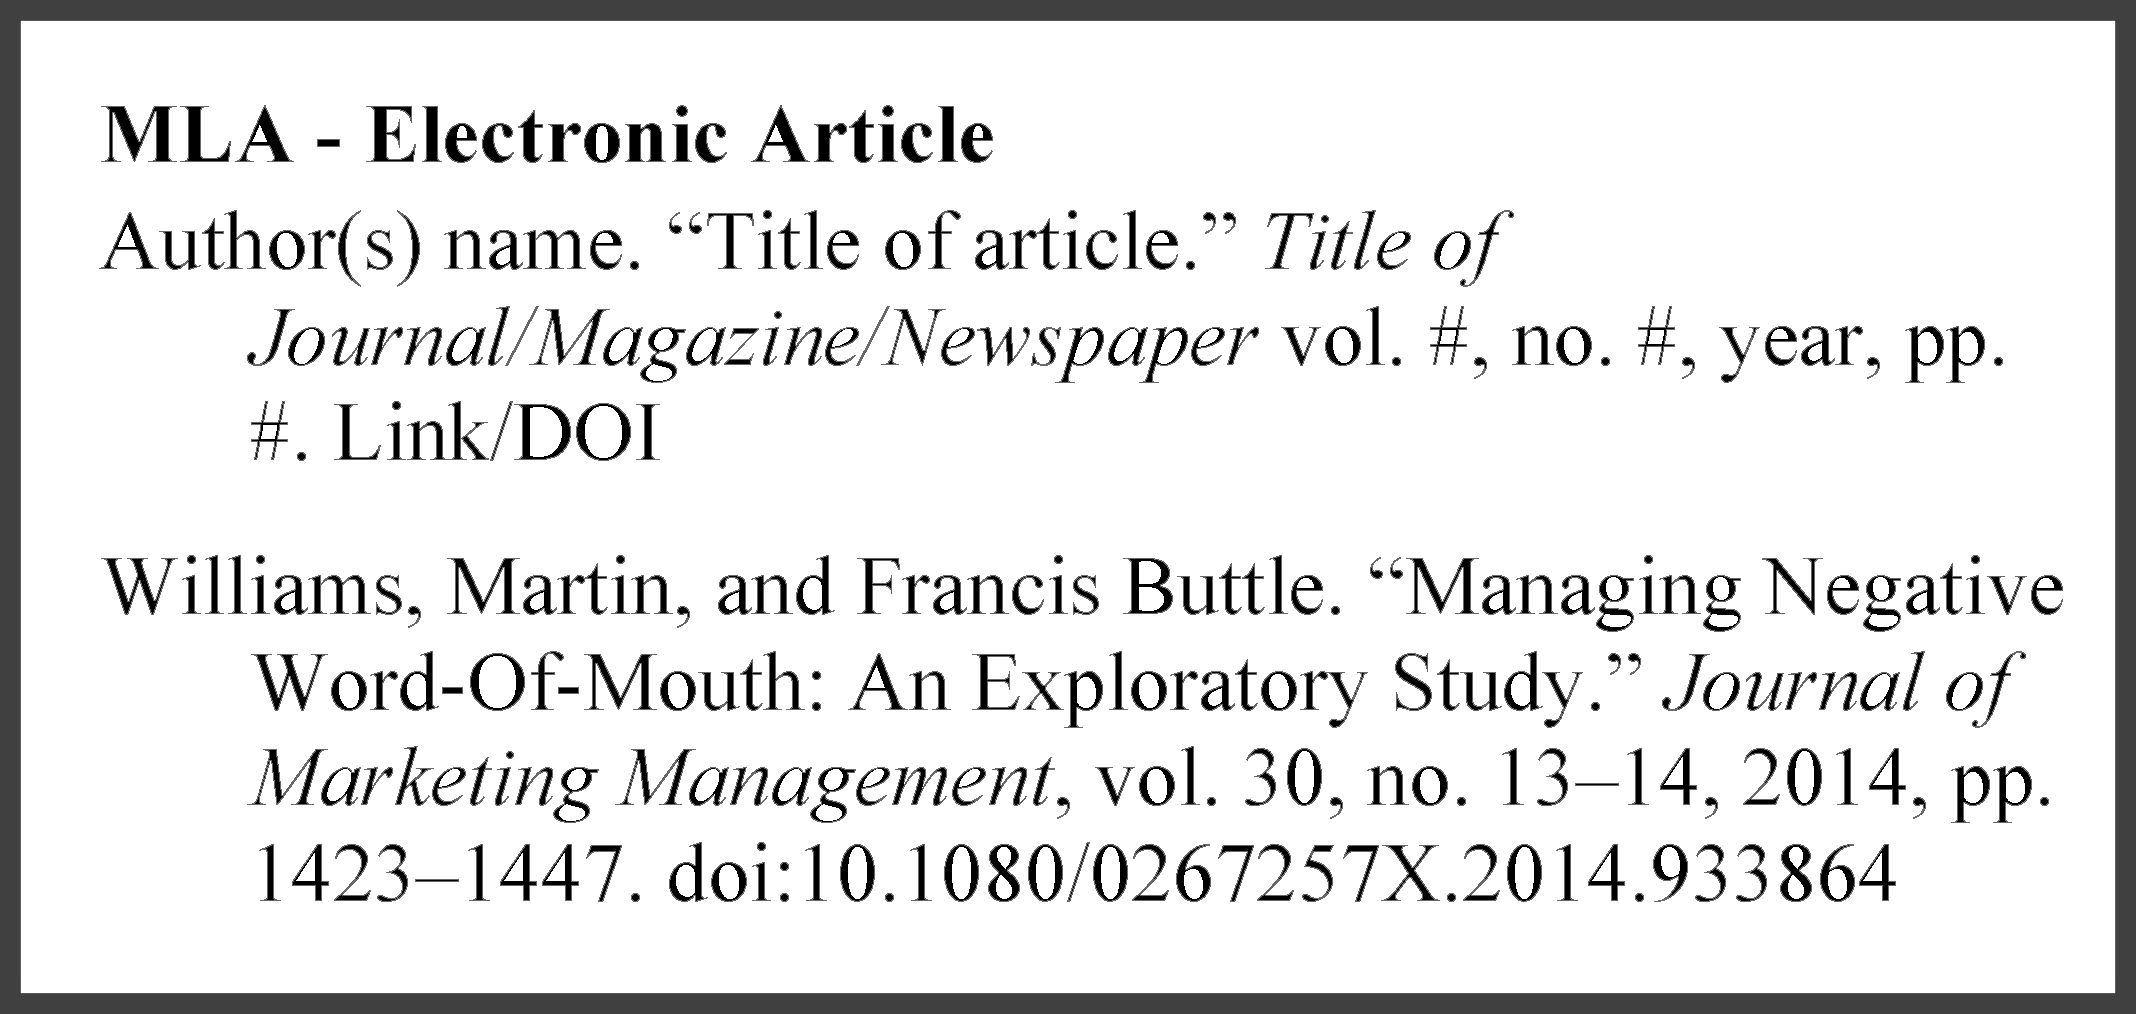 example of an MLA electronic article reference